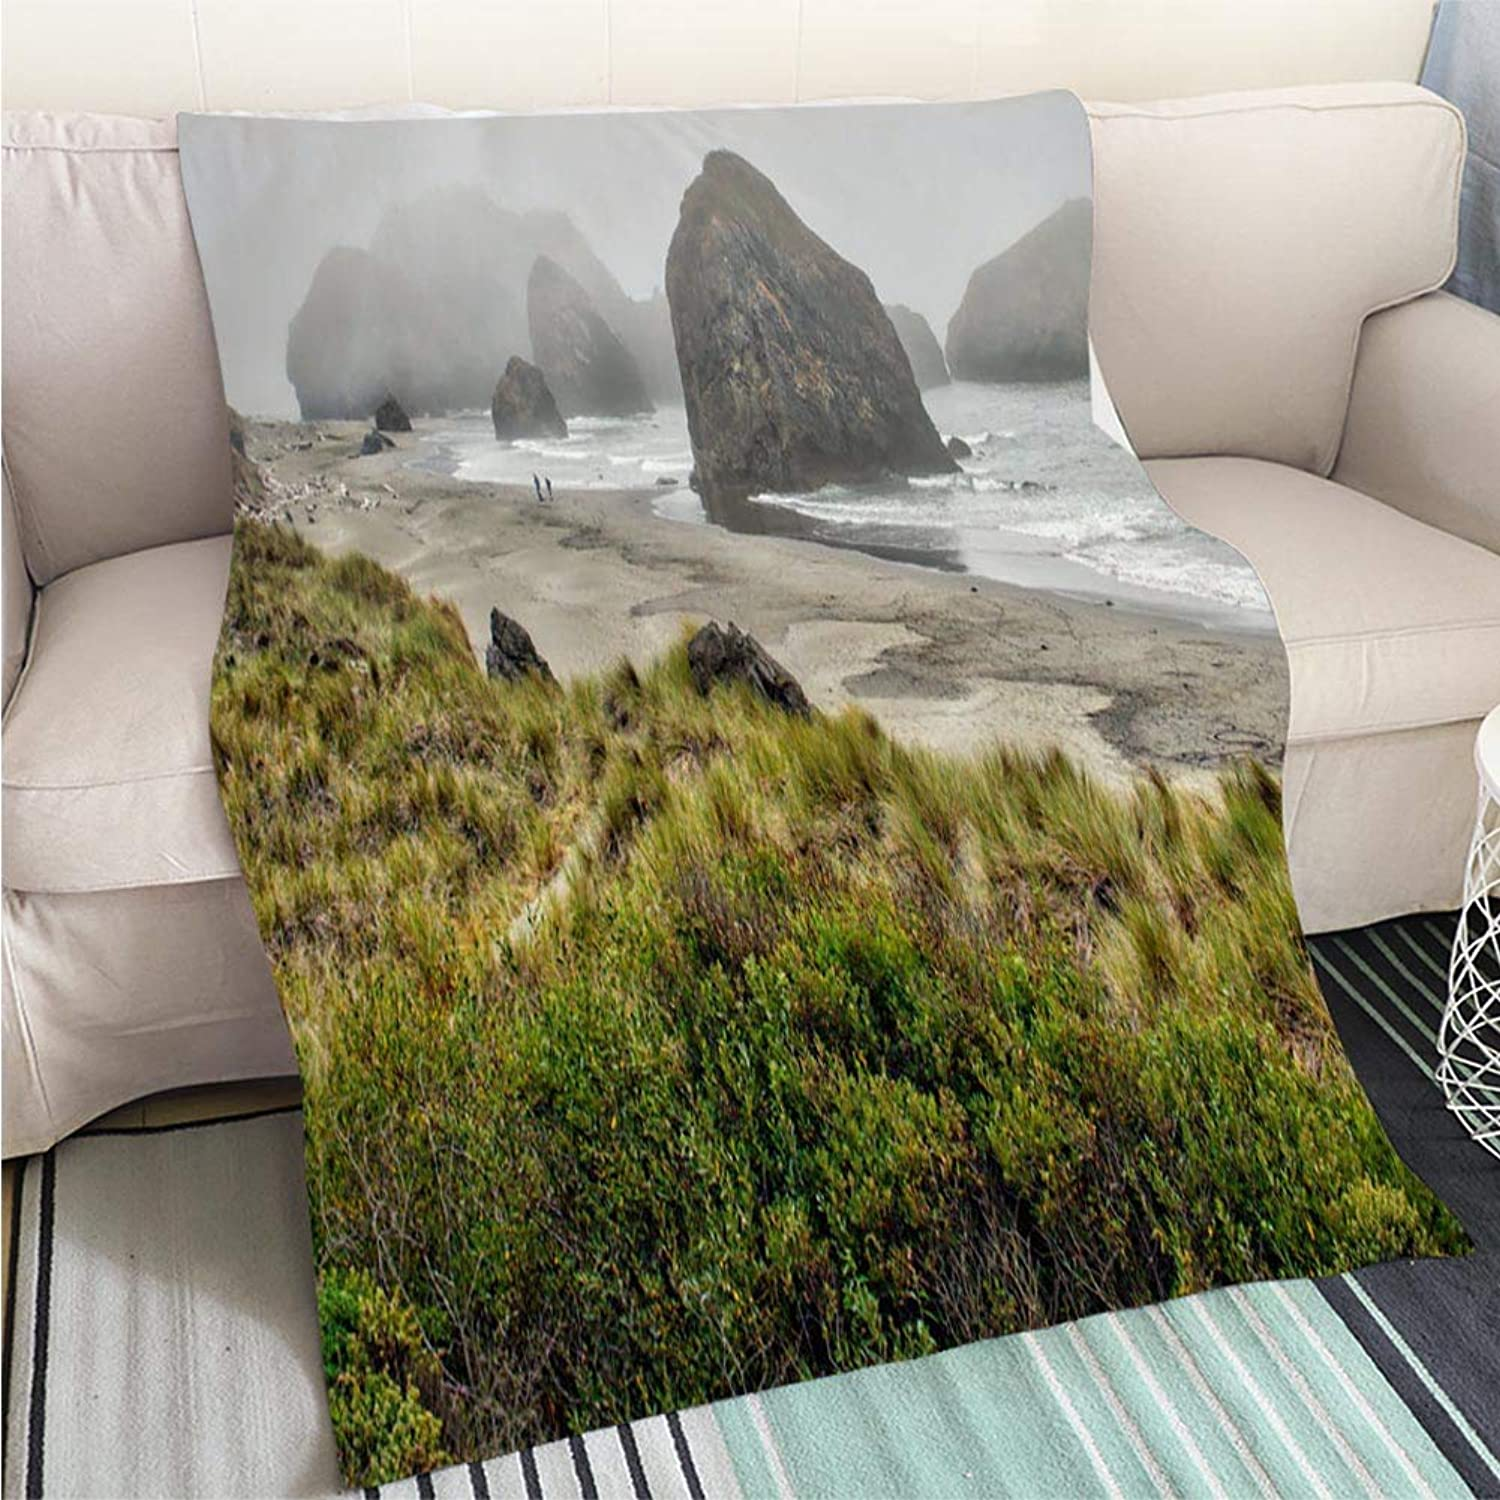 BEICICI Comforter Multicolor Bed or Couch View of The Beautiful Beach and Coastline Art Blanket as Bedspread gold White Bed or Couch